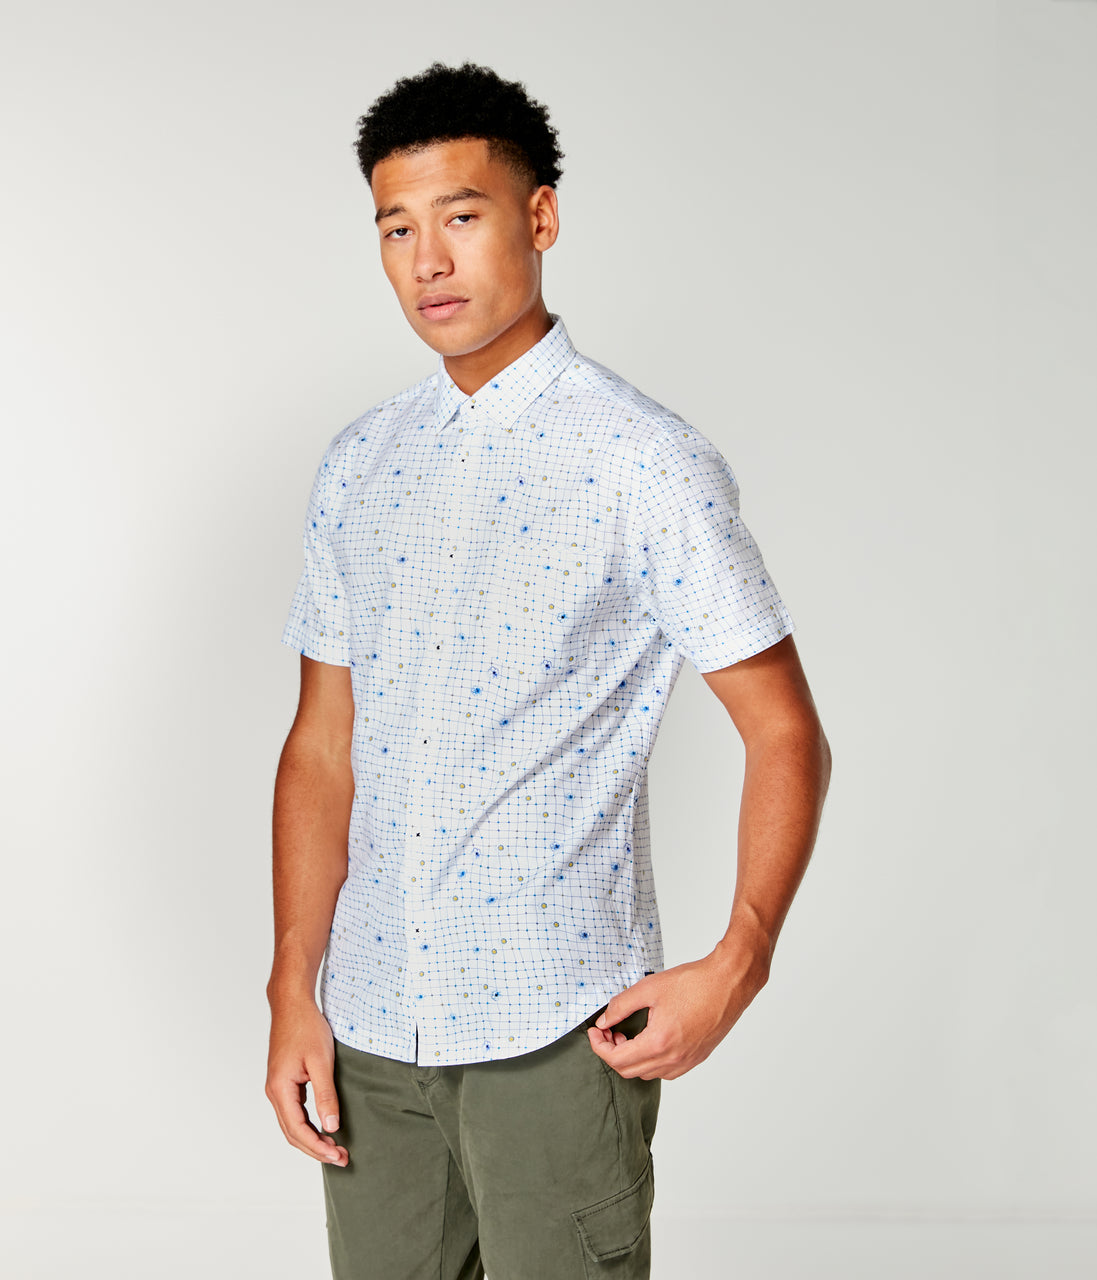 Woven On-Point Shirt - White Wrap Dot Floral - Good Man Brand - On-Point Print Shirt Short Sleeve - White Wrap Dot Floral